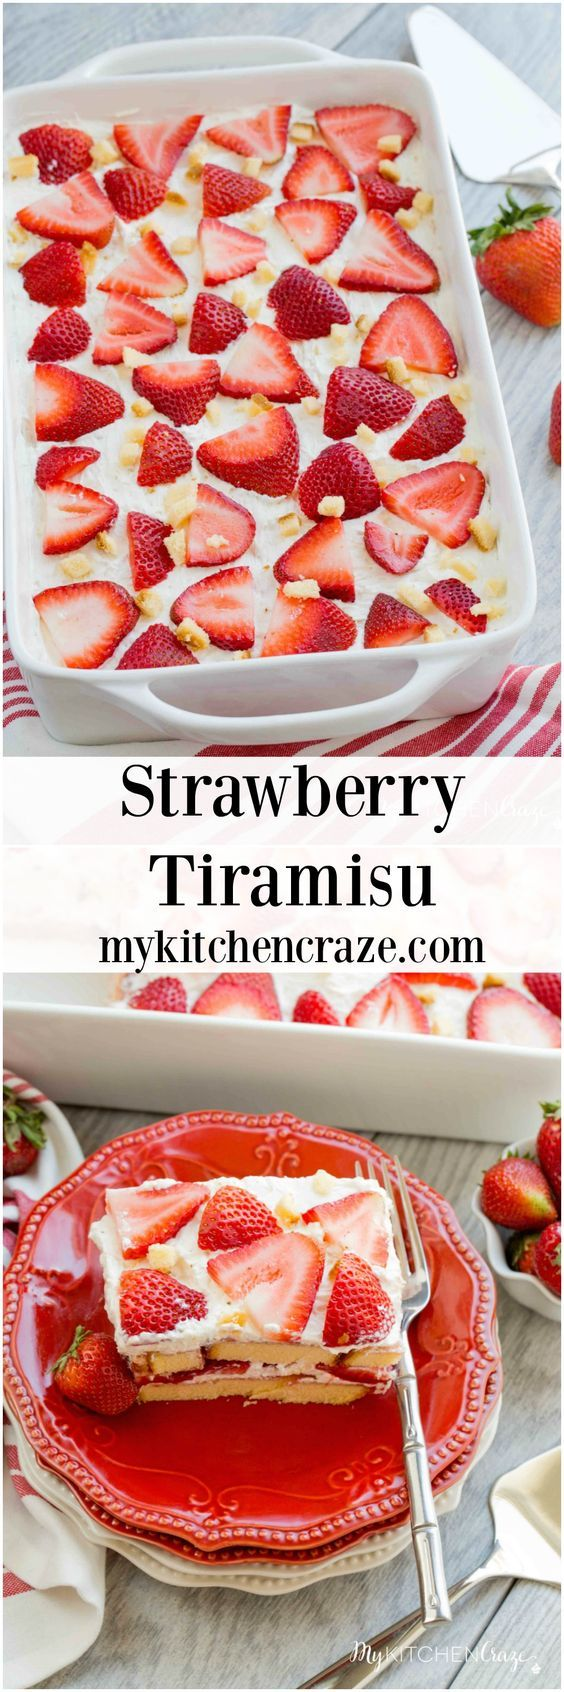 Strawberry Tiramisu ~ mykitchencraze.com ~ Enjoy this delicious and fun twist on tiramisu! Loaded with strawberries, pound cake, mascarpone cheese and cool whip. This is one dessert you won't be able to pass up! #MomsDayTreats #ad @Sara Lee Desserts @Cool Whip